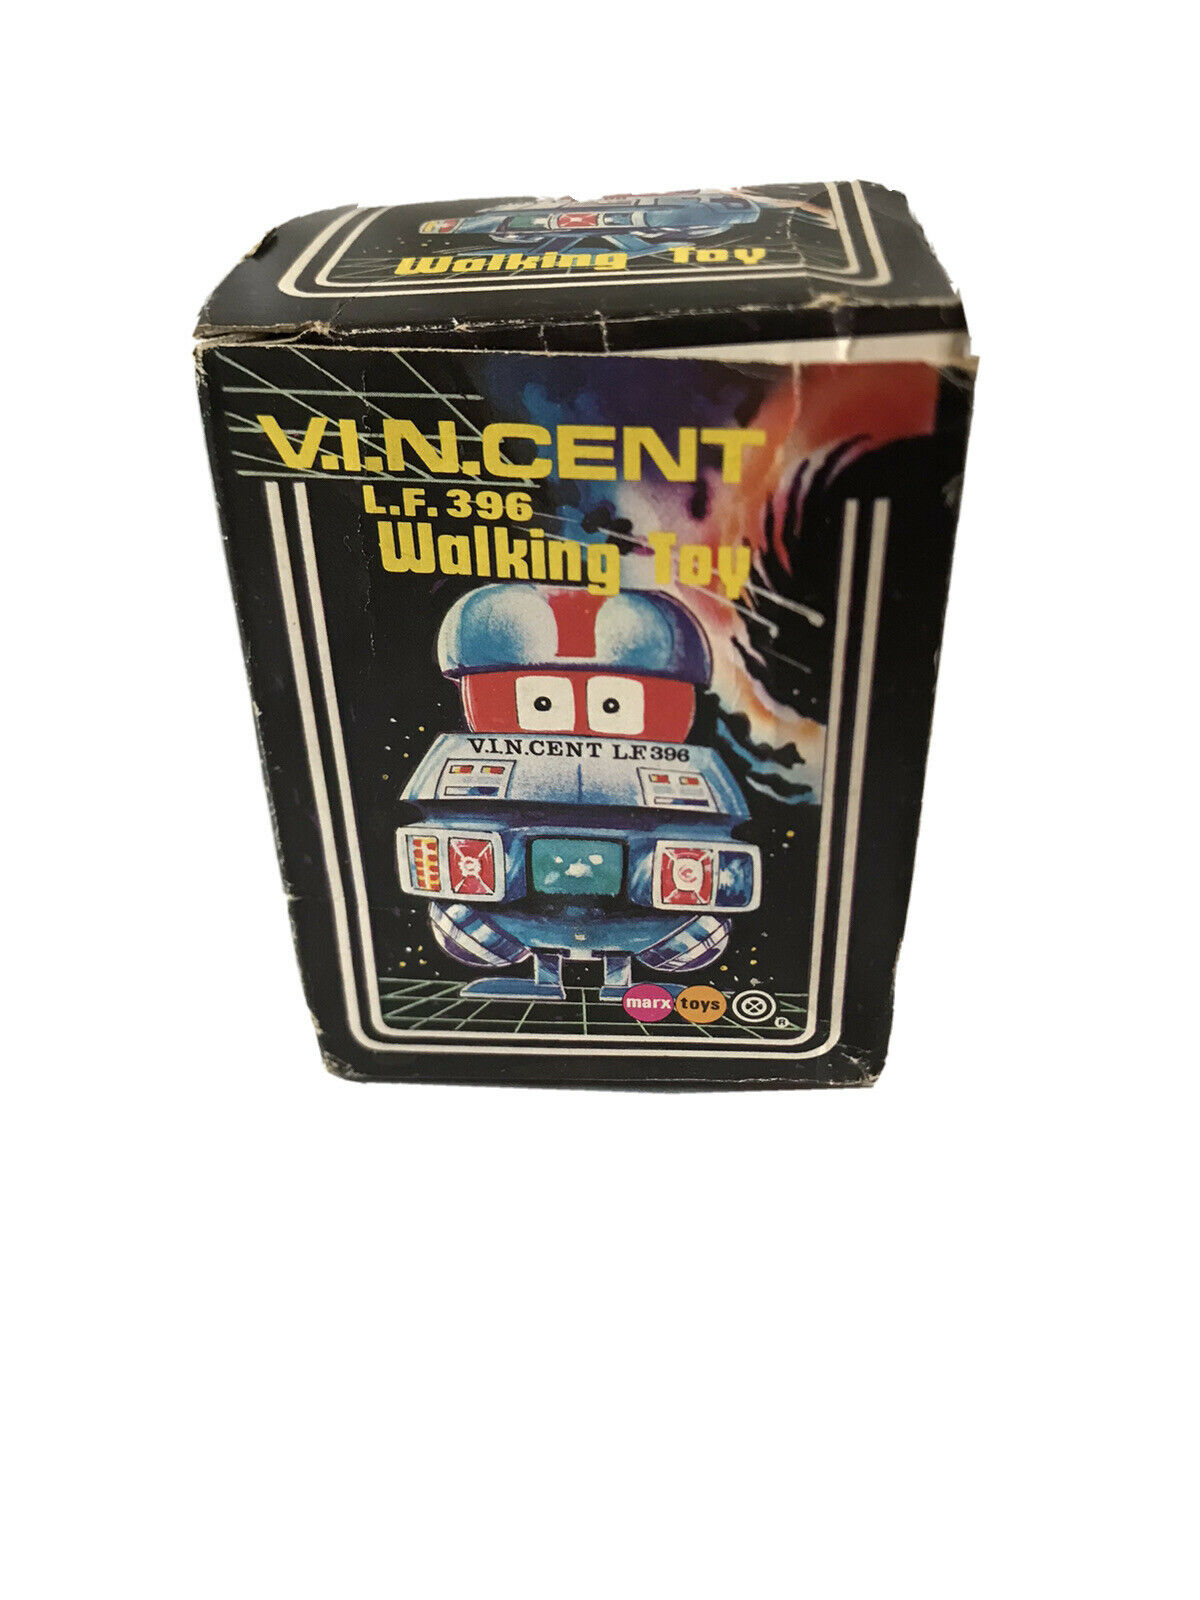 VIncent from the Black Hole- 5 Awesome Things on eBay